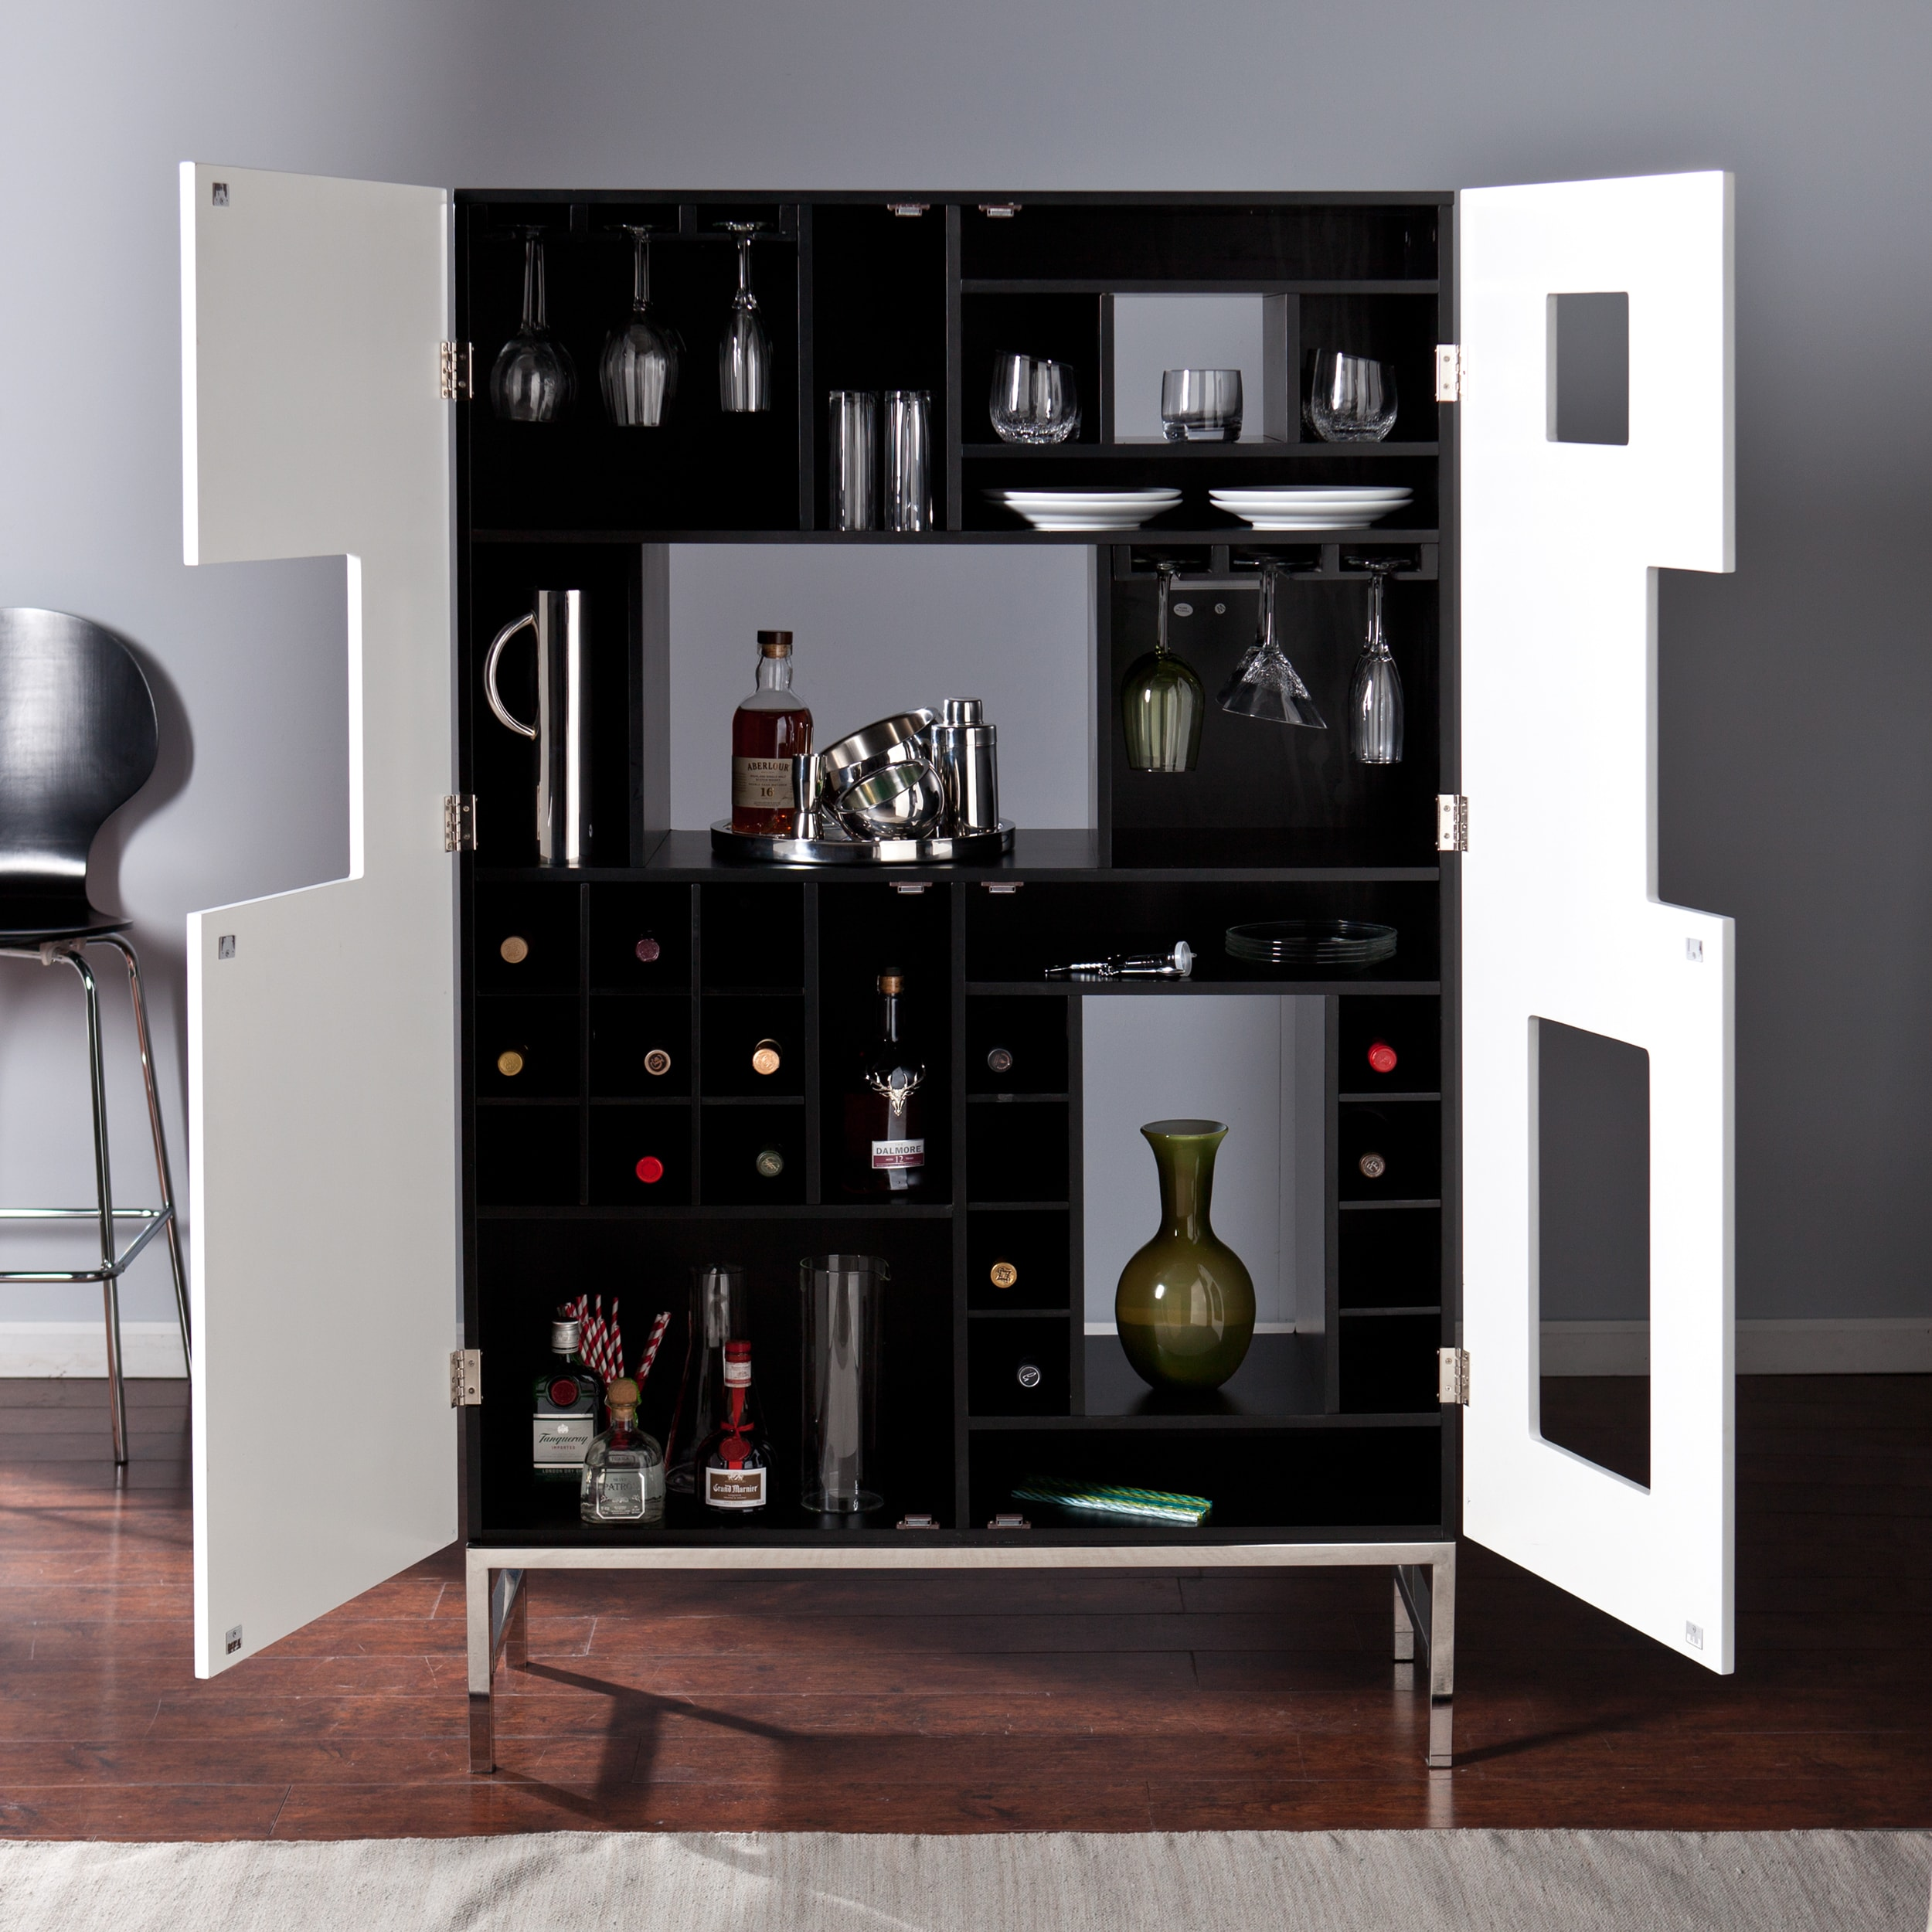 cabinet close id profileid wholesale sei product bjs imageservice bottle club james bar wine undefined recipeid